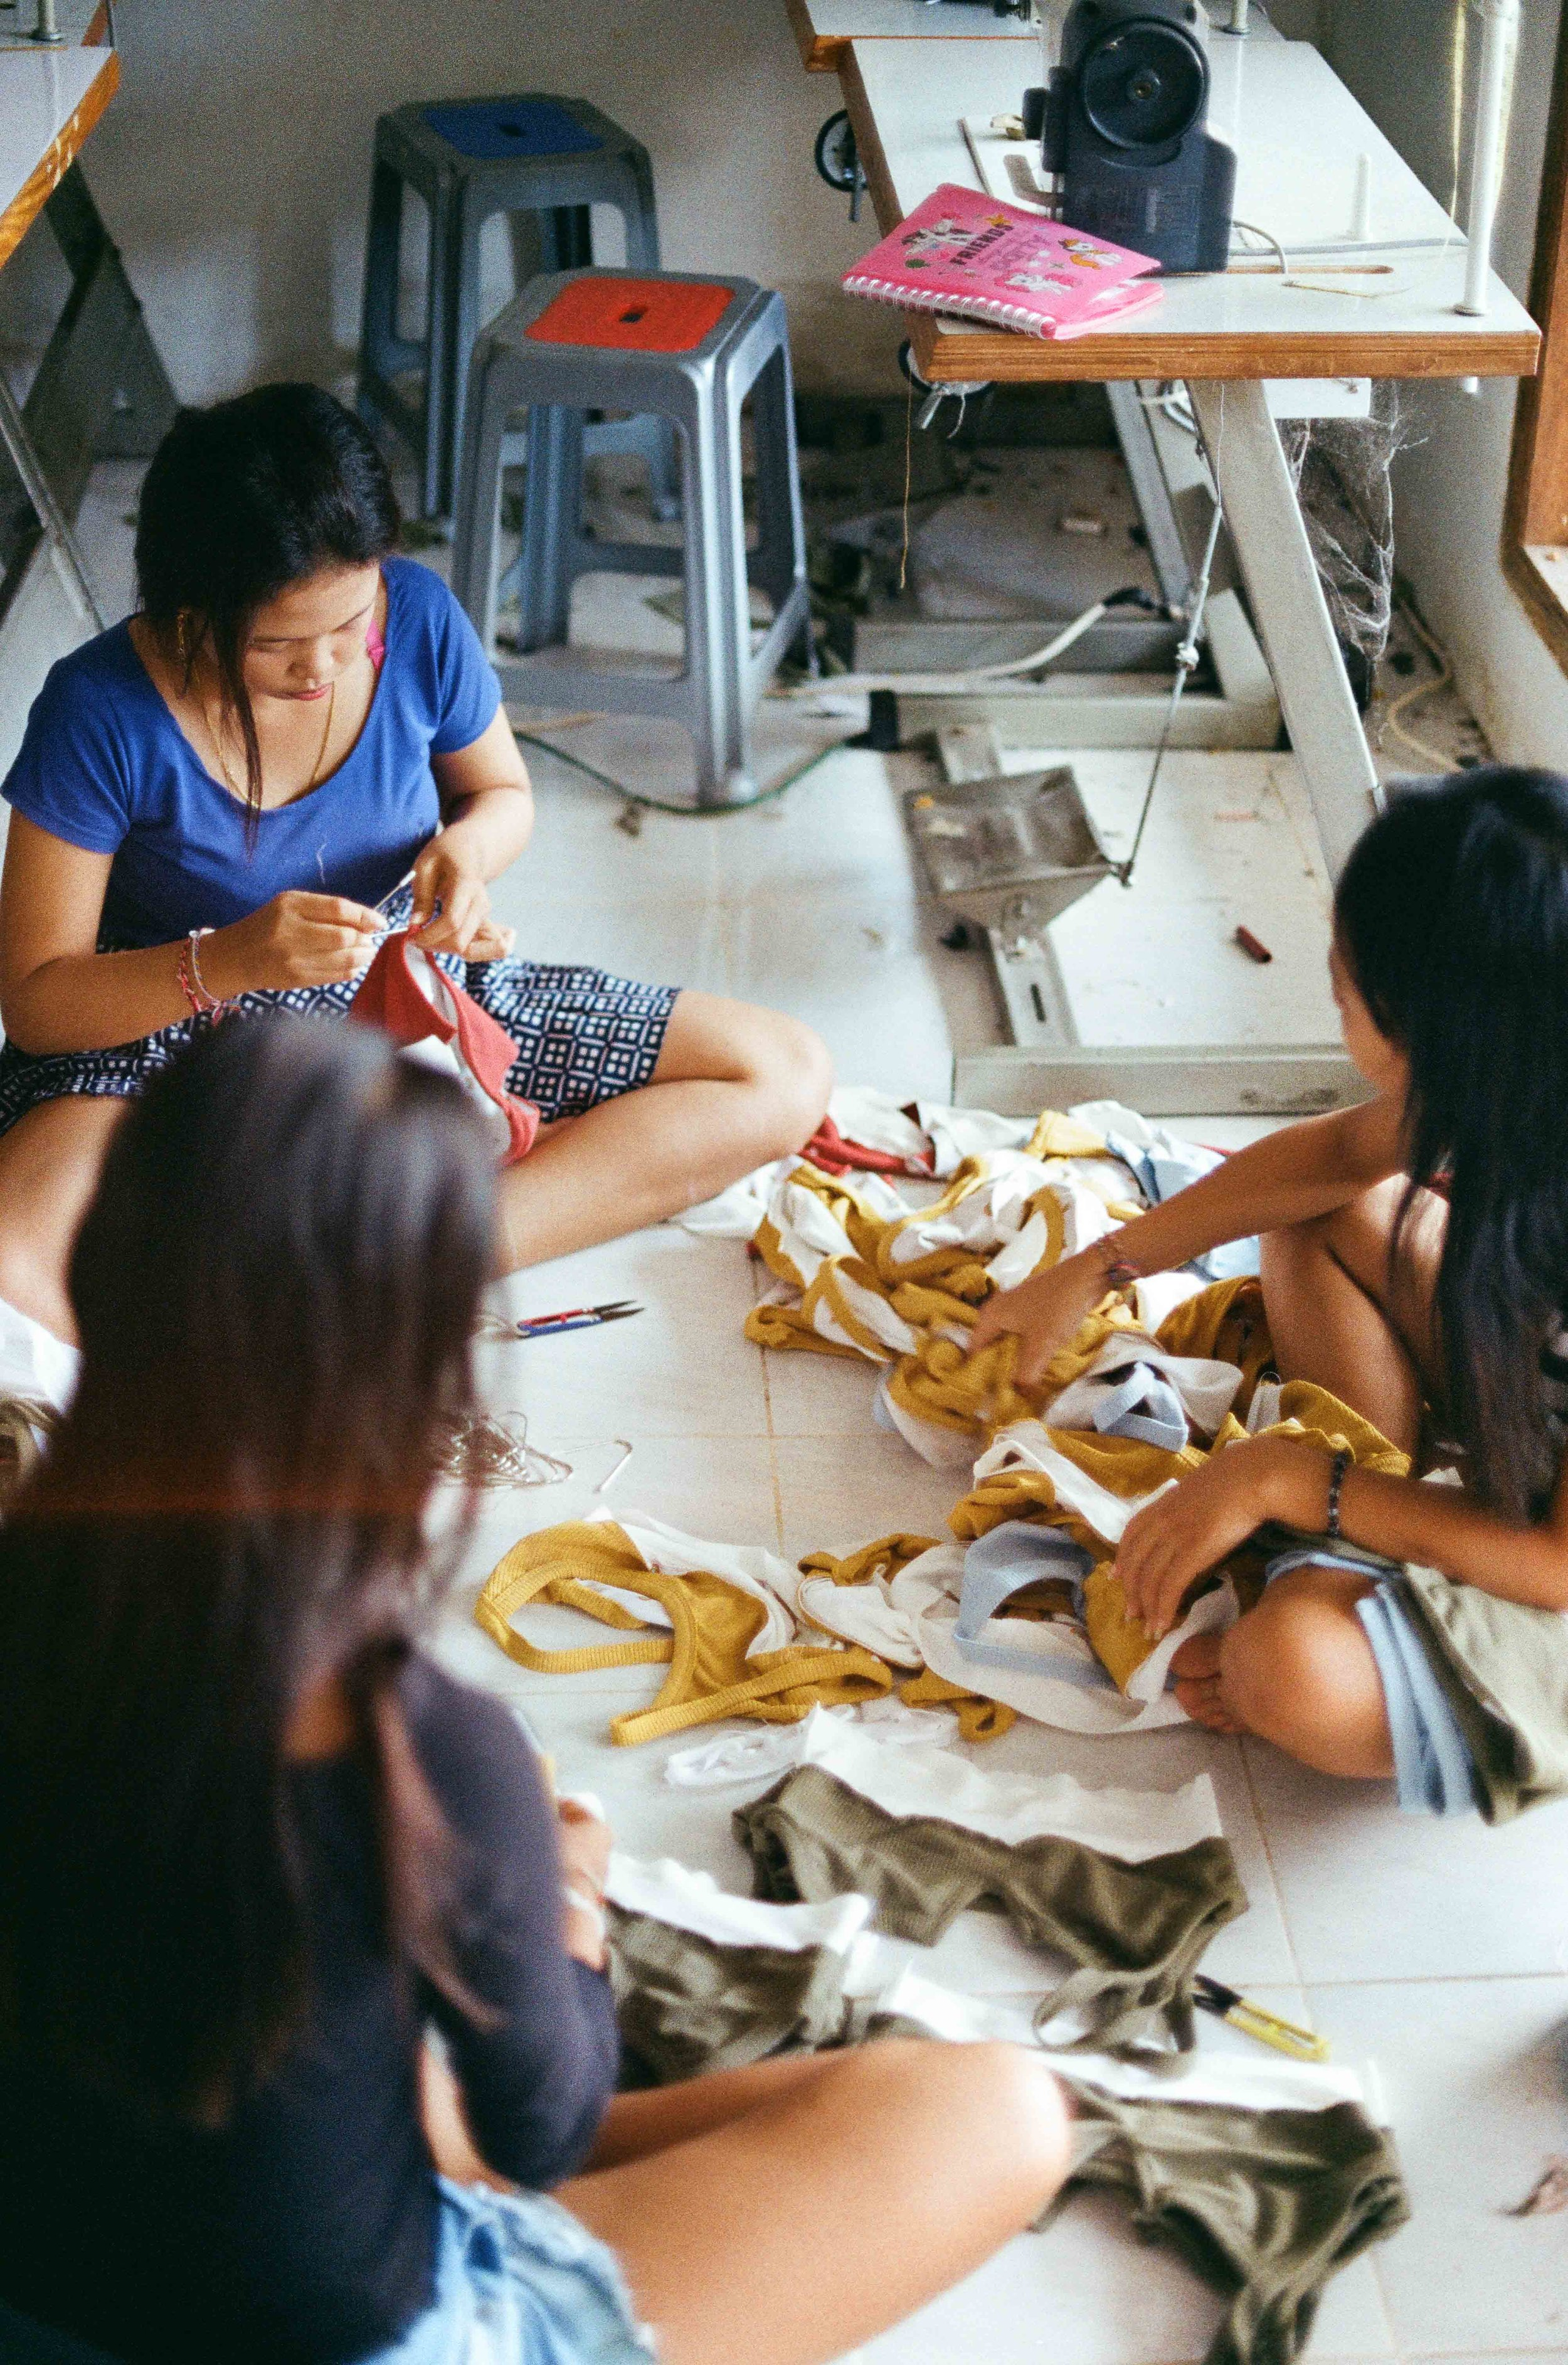 On the hotter days in Bali the tiled floor is the coolest place to sit. Our tailors + seamstresses testing the safety stitching for durability.